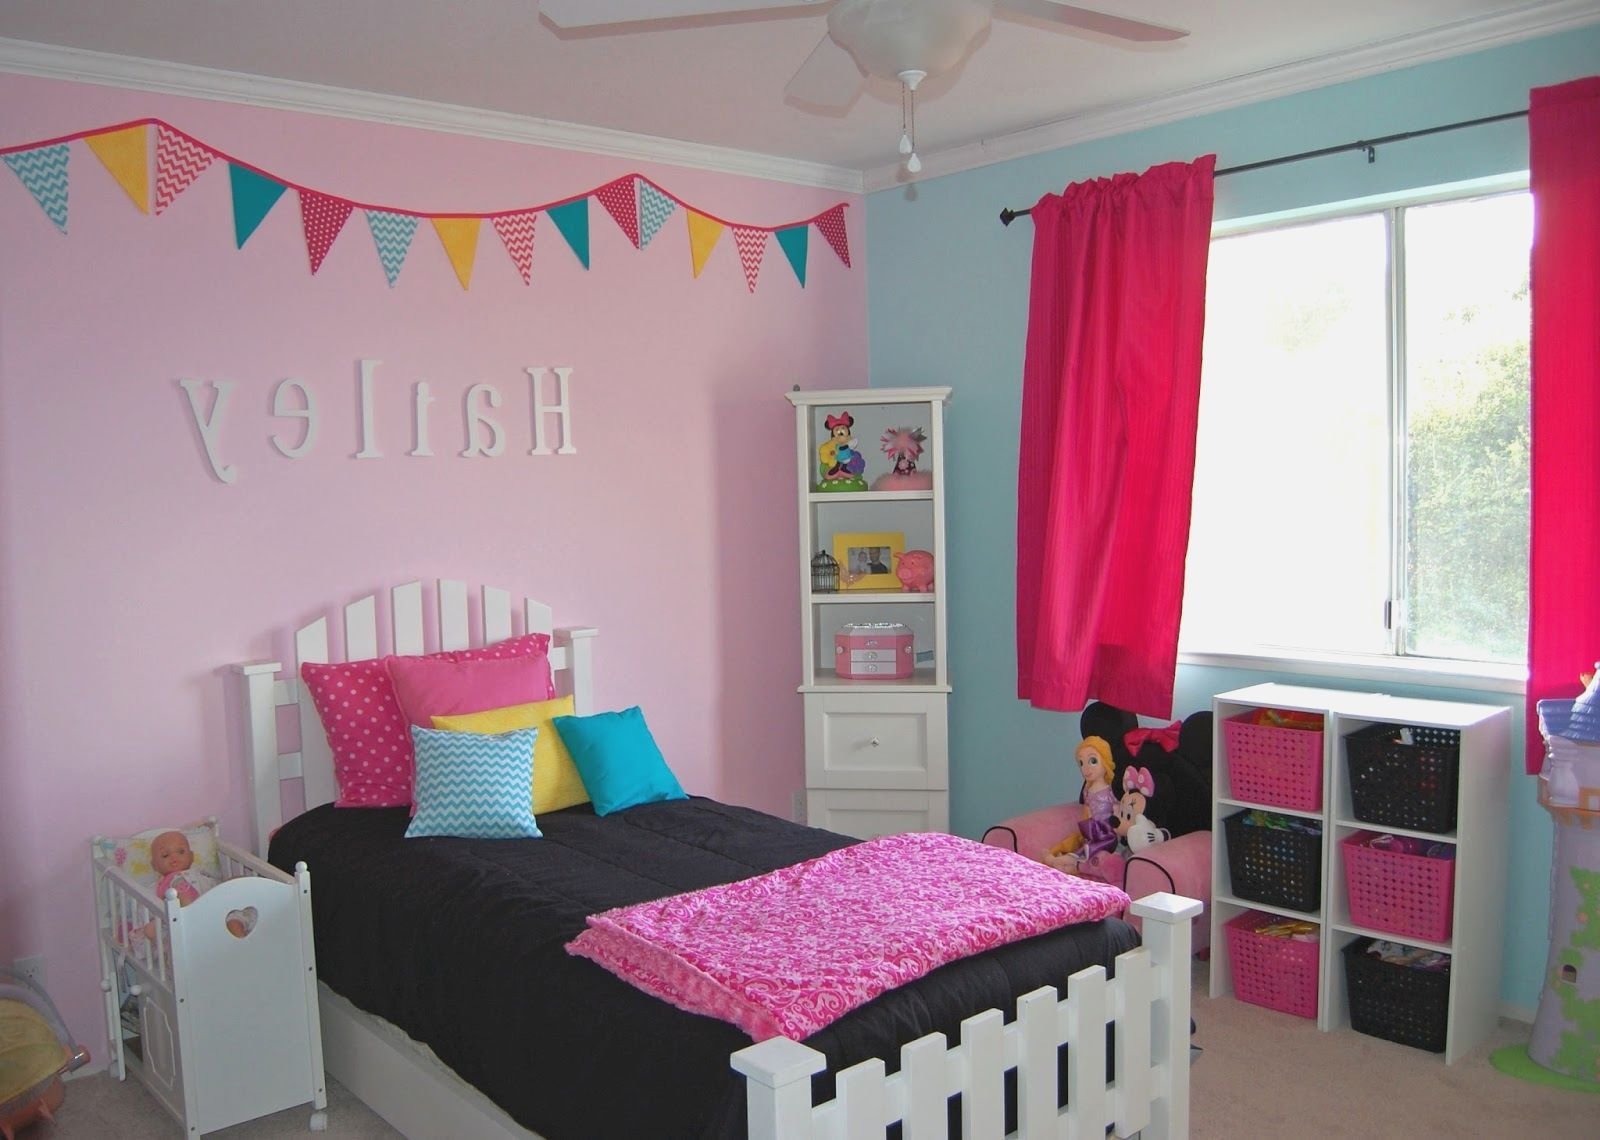 Bedroom Ideas For 10 Yr Old Girl more picture Bedroom Ideas For 10 ...